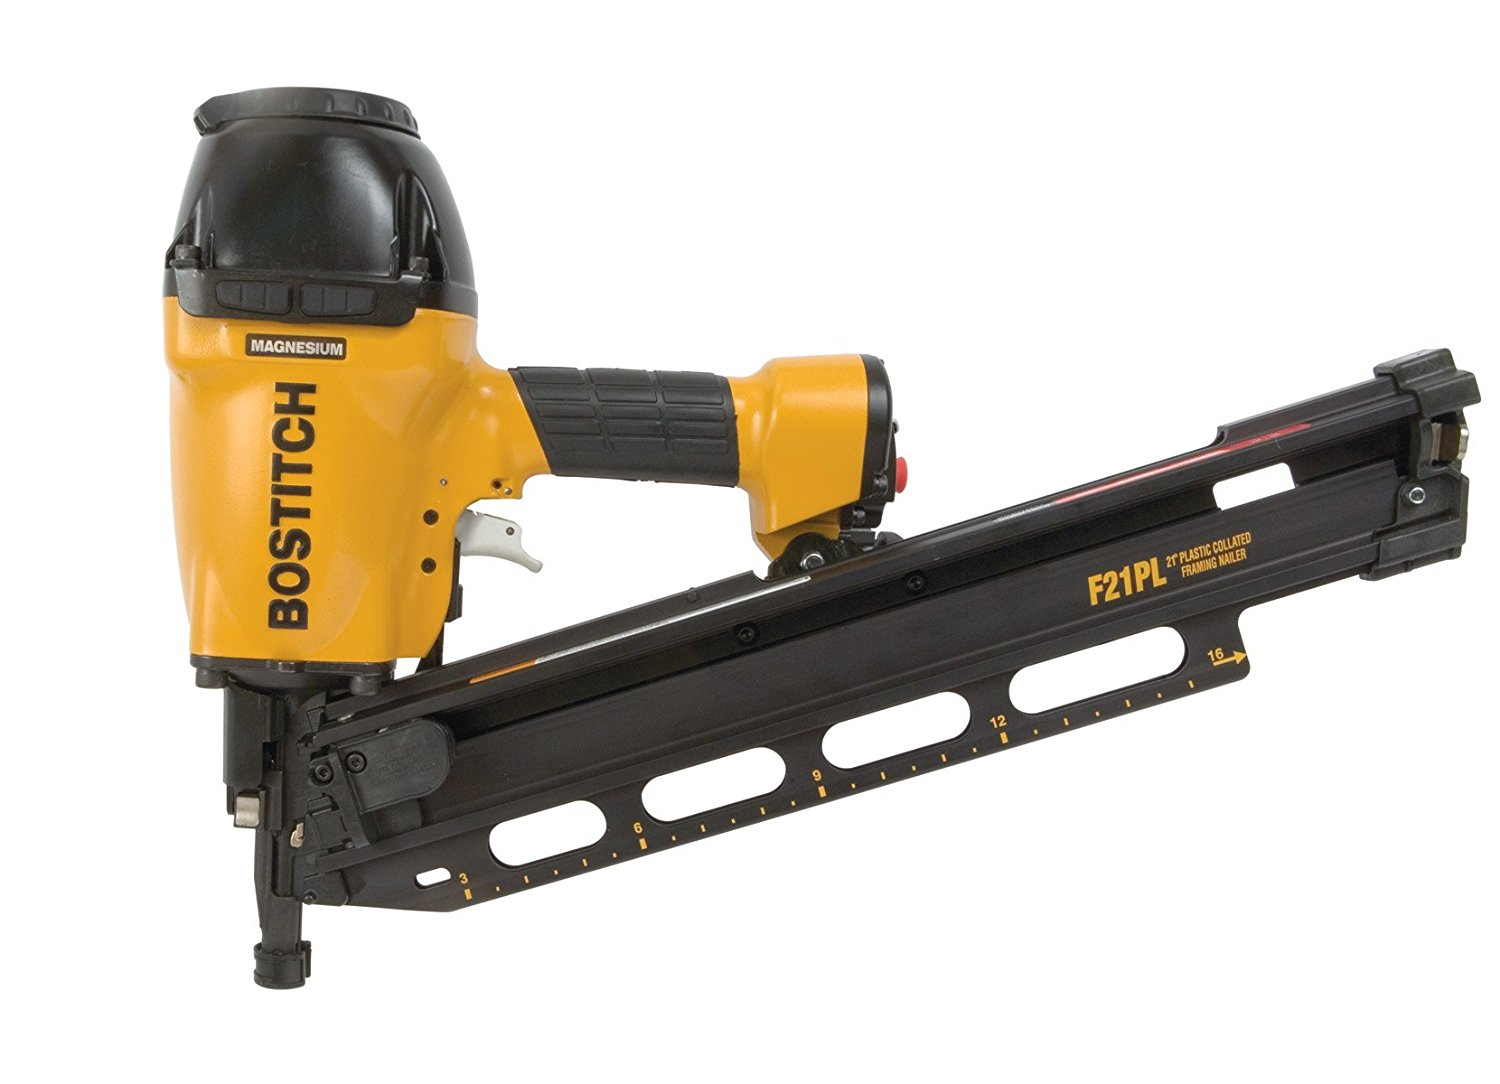 Bostitch Plastic Collated Framing Nailer